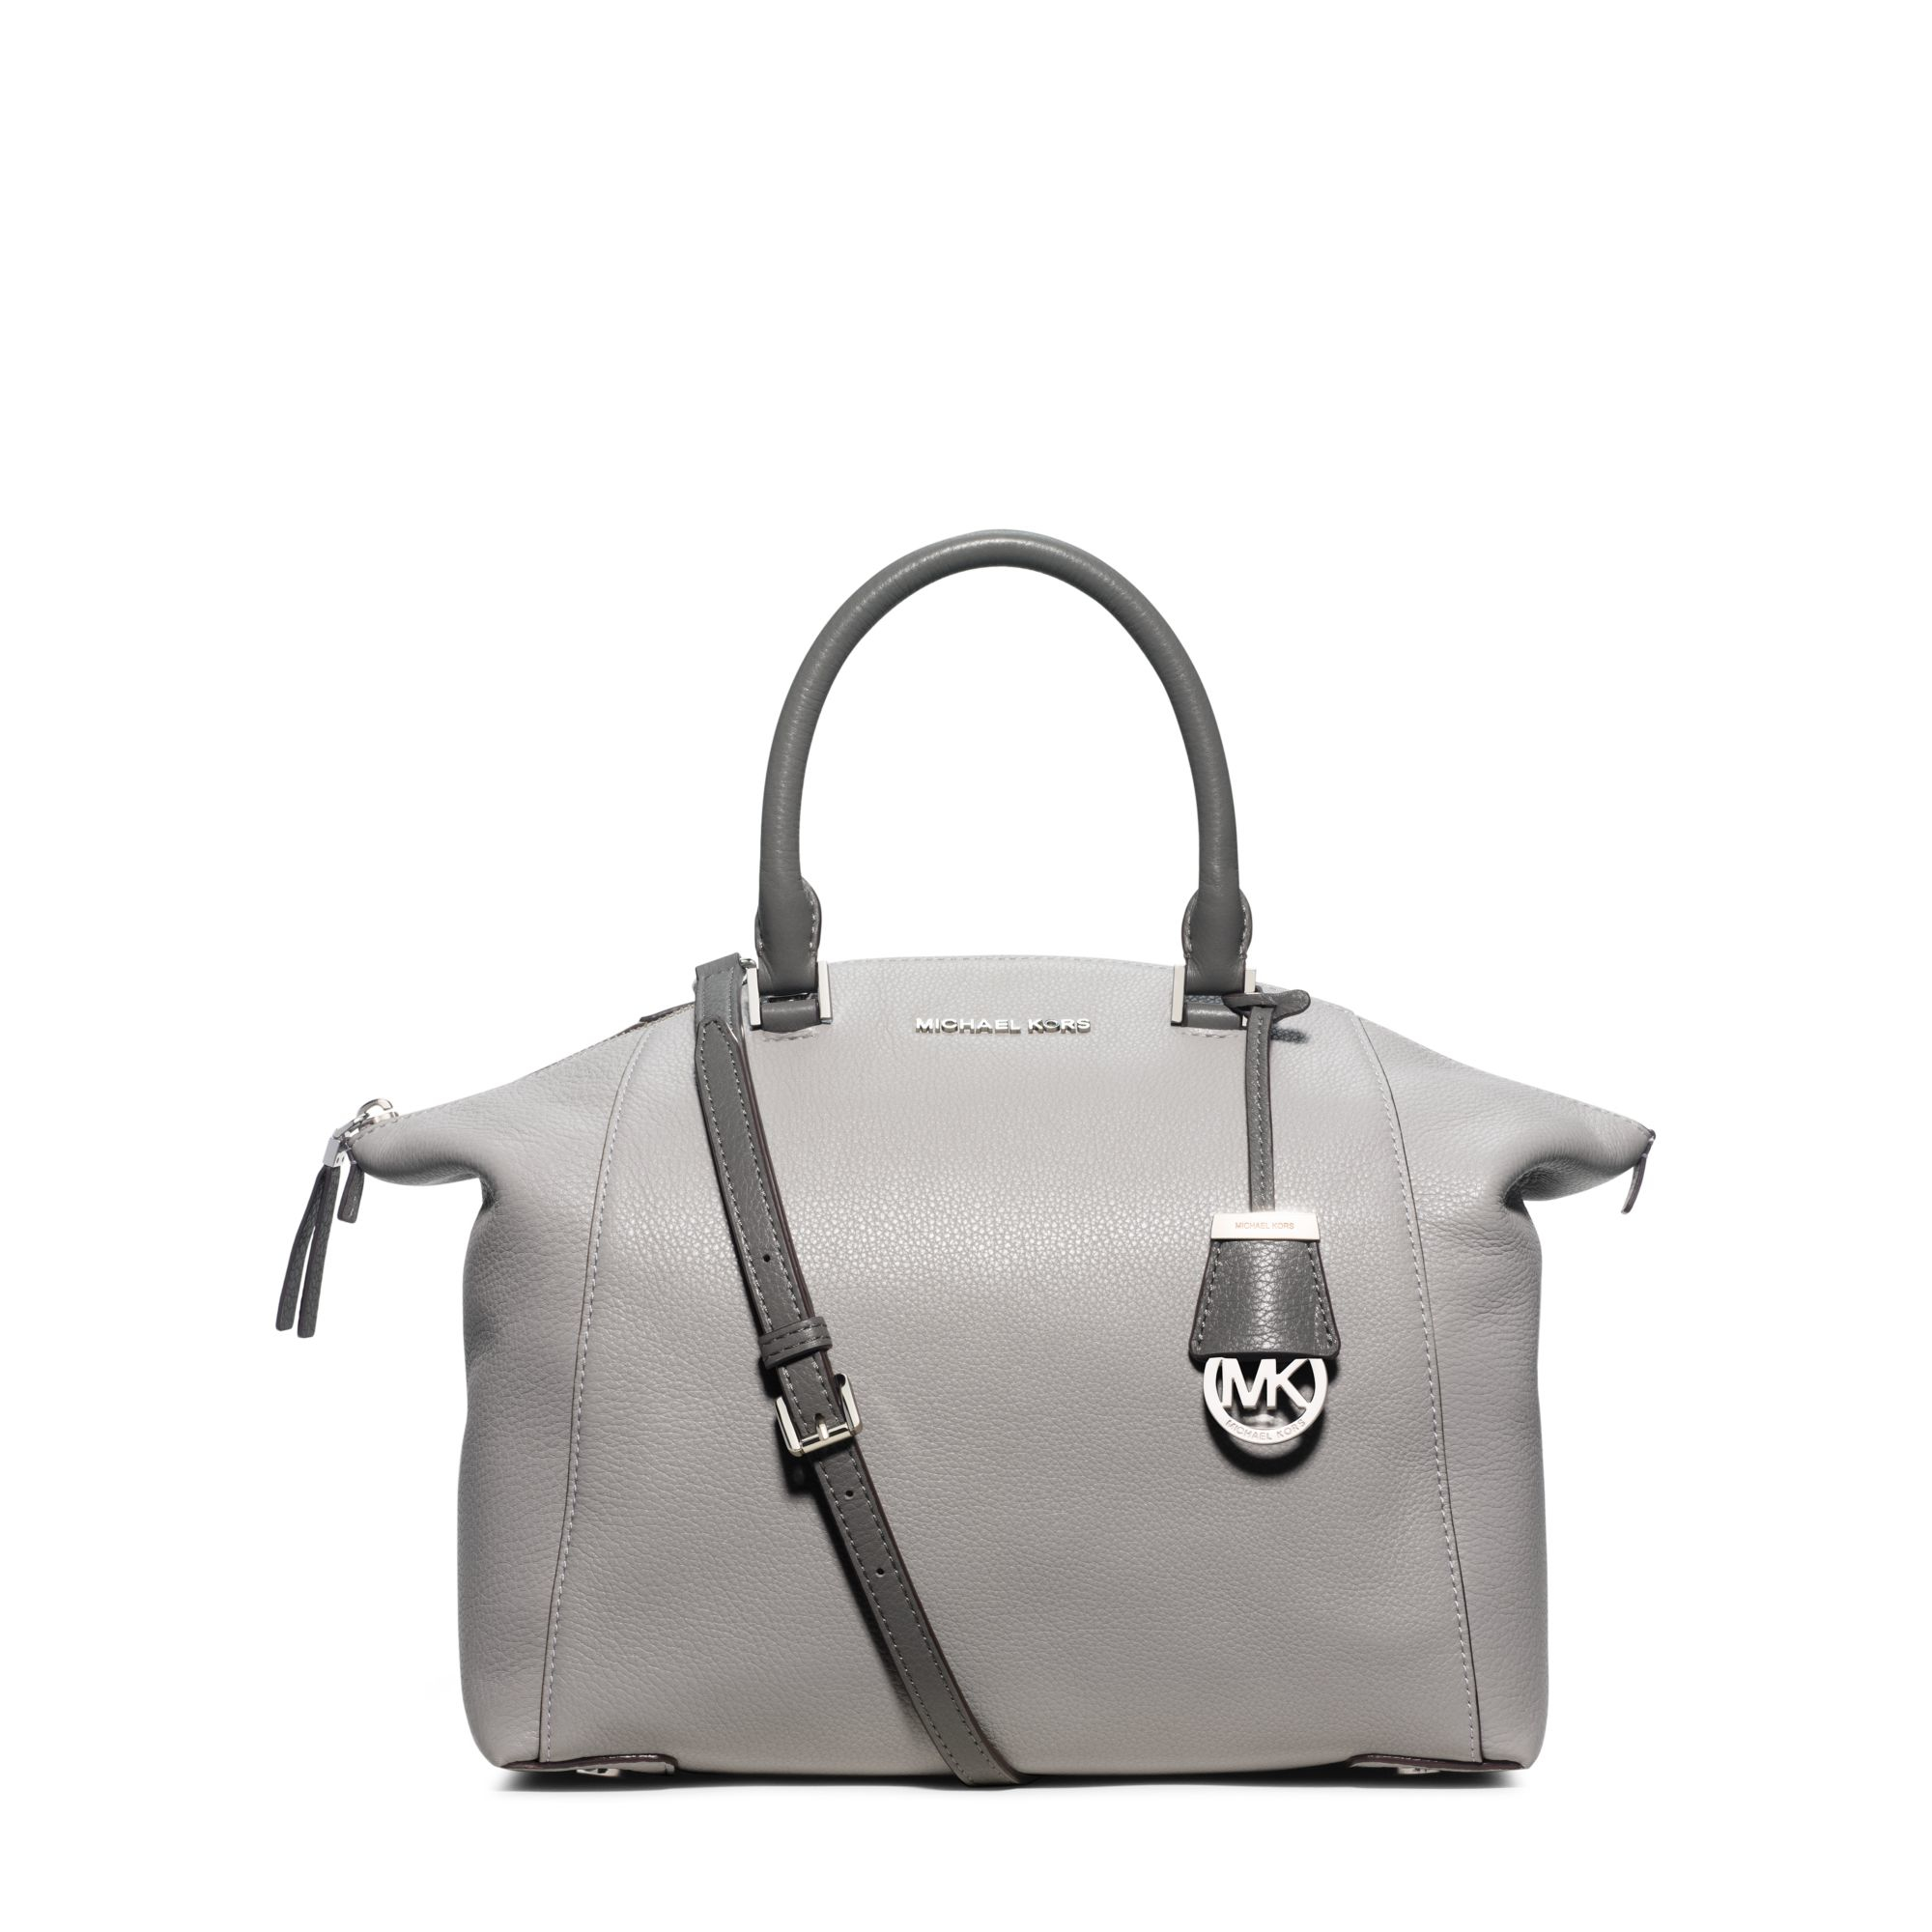 e3292b3980 Michael Kors Riley Large Leather Satchel in Gray - Lyst